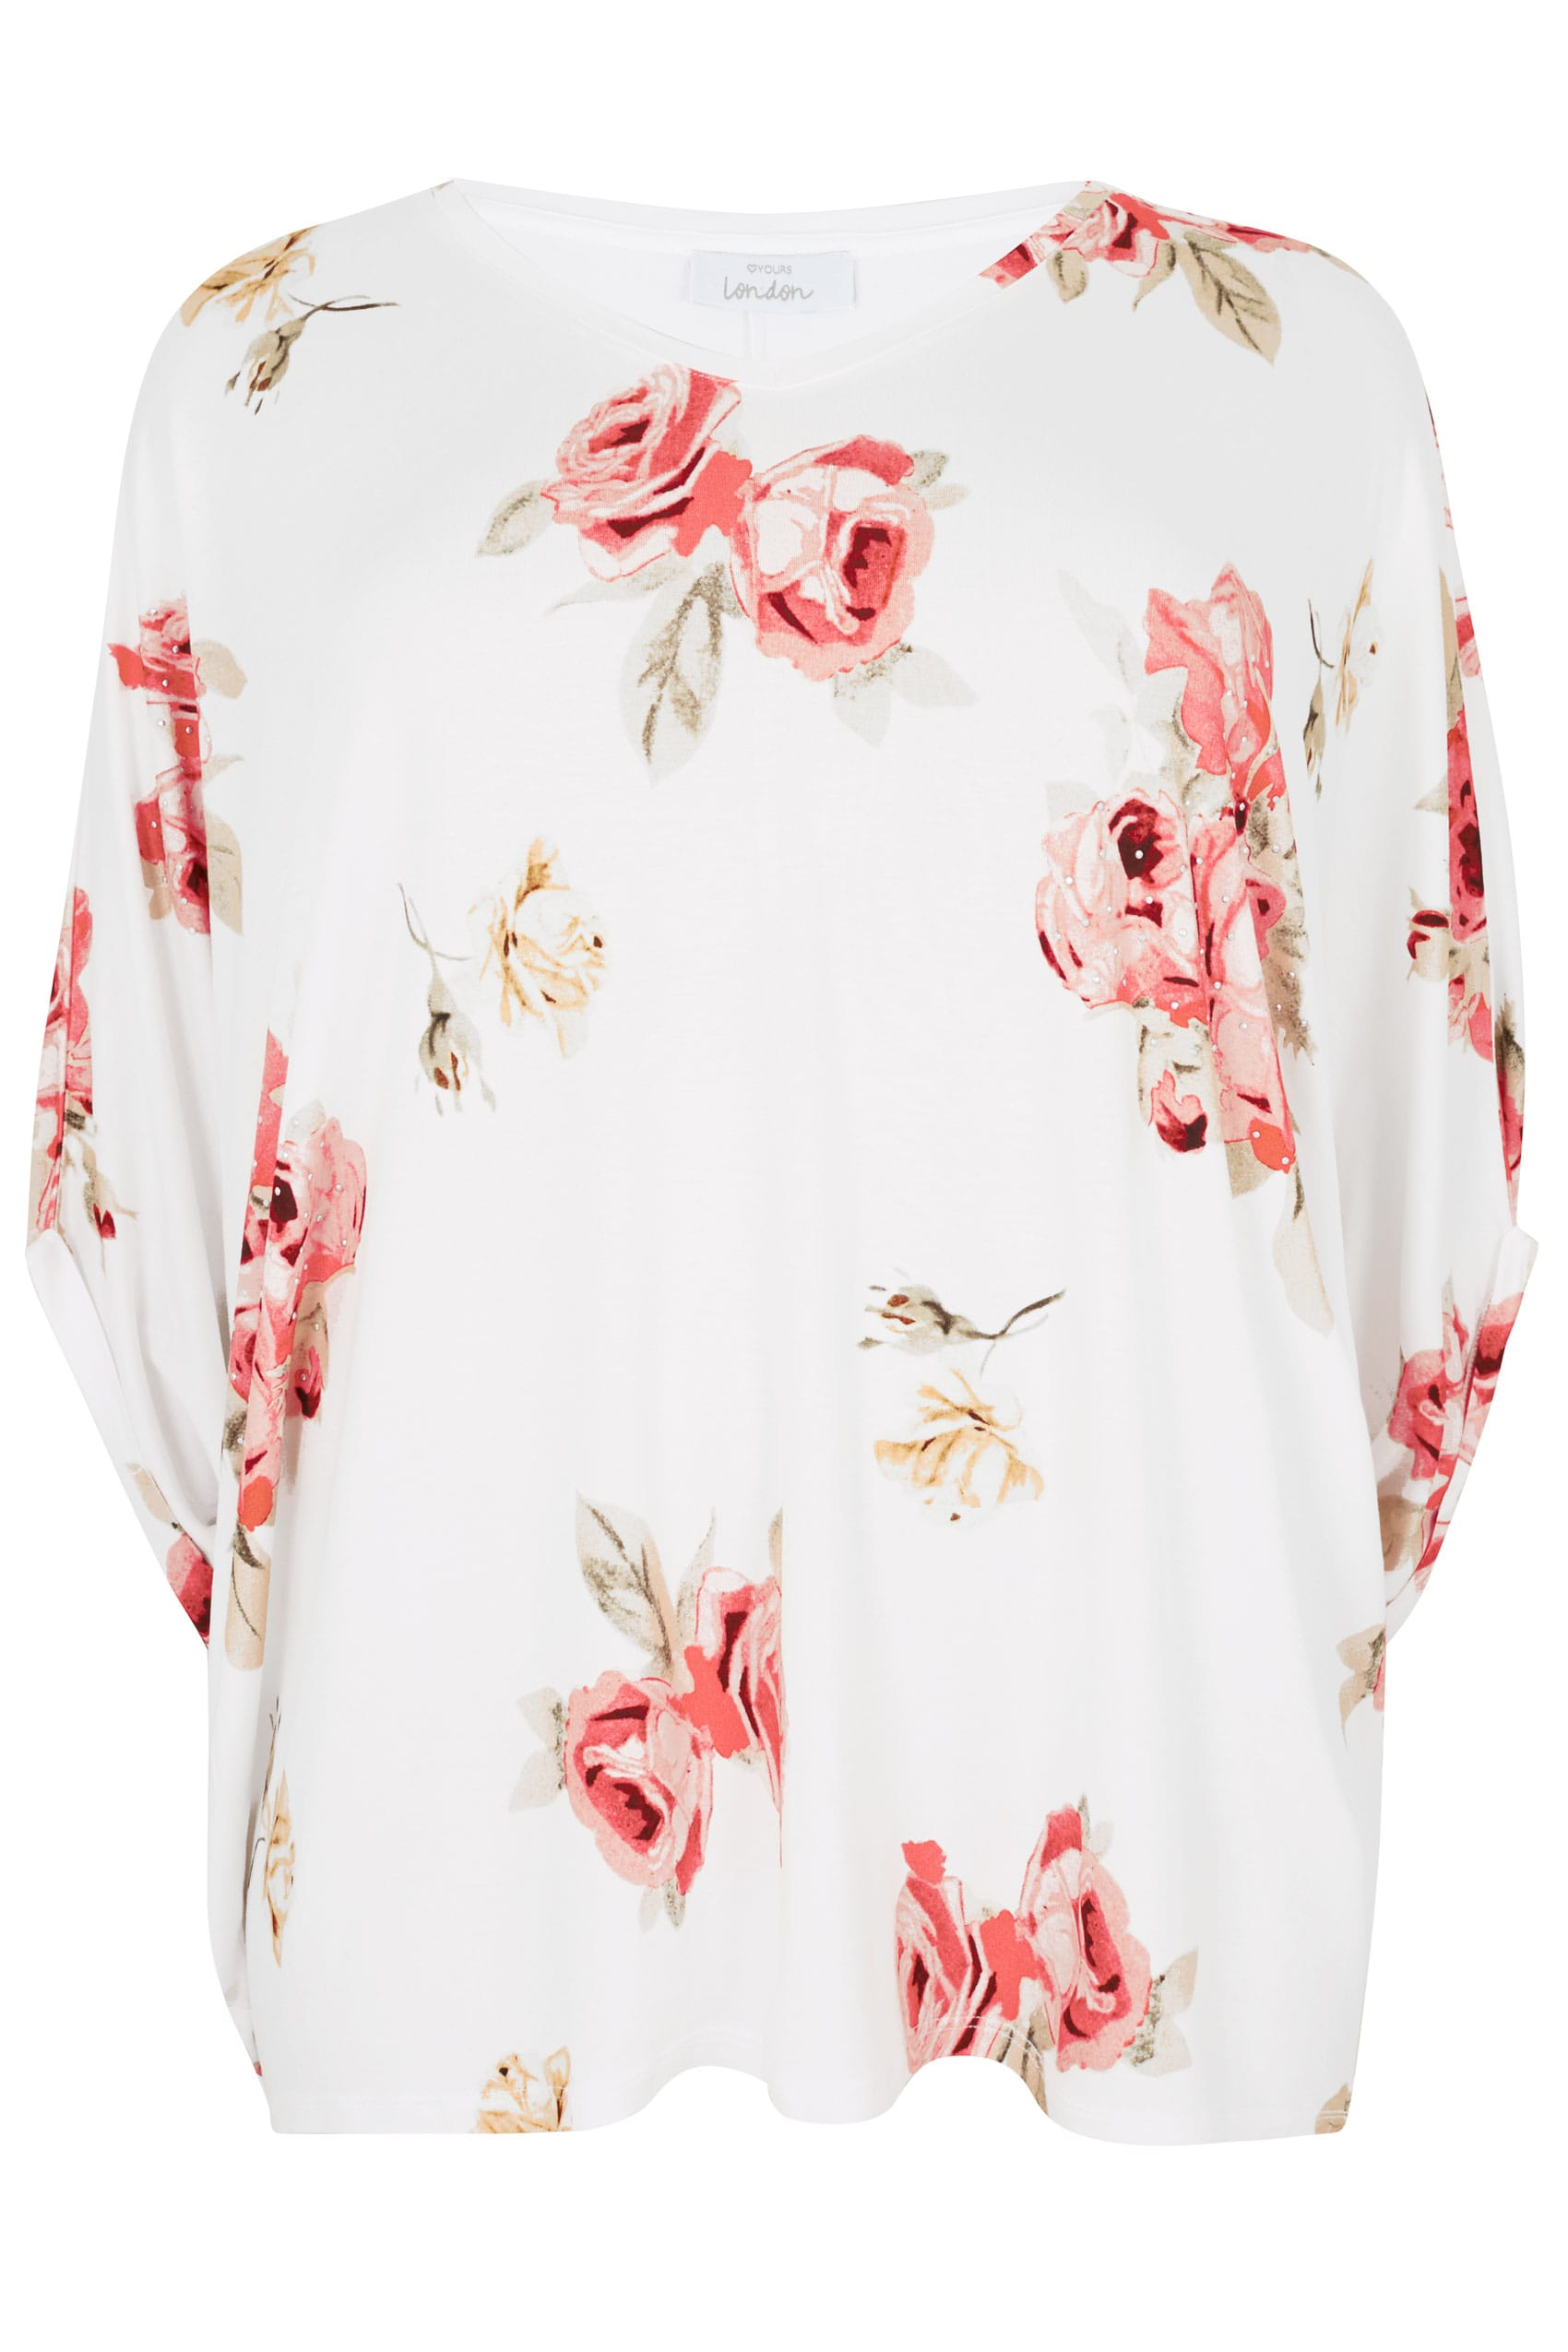 Yours london white multi floral print oversized top with studded details plus size 16 to 32 - Best shows to see in london ...